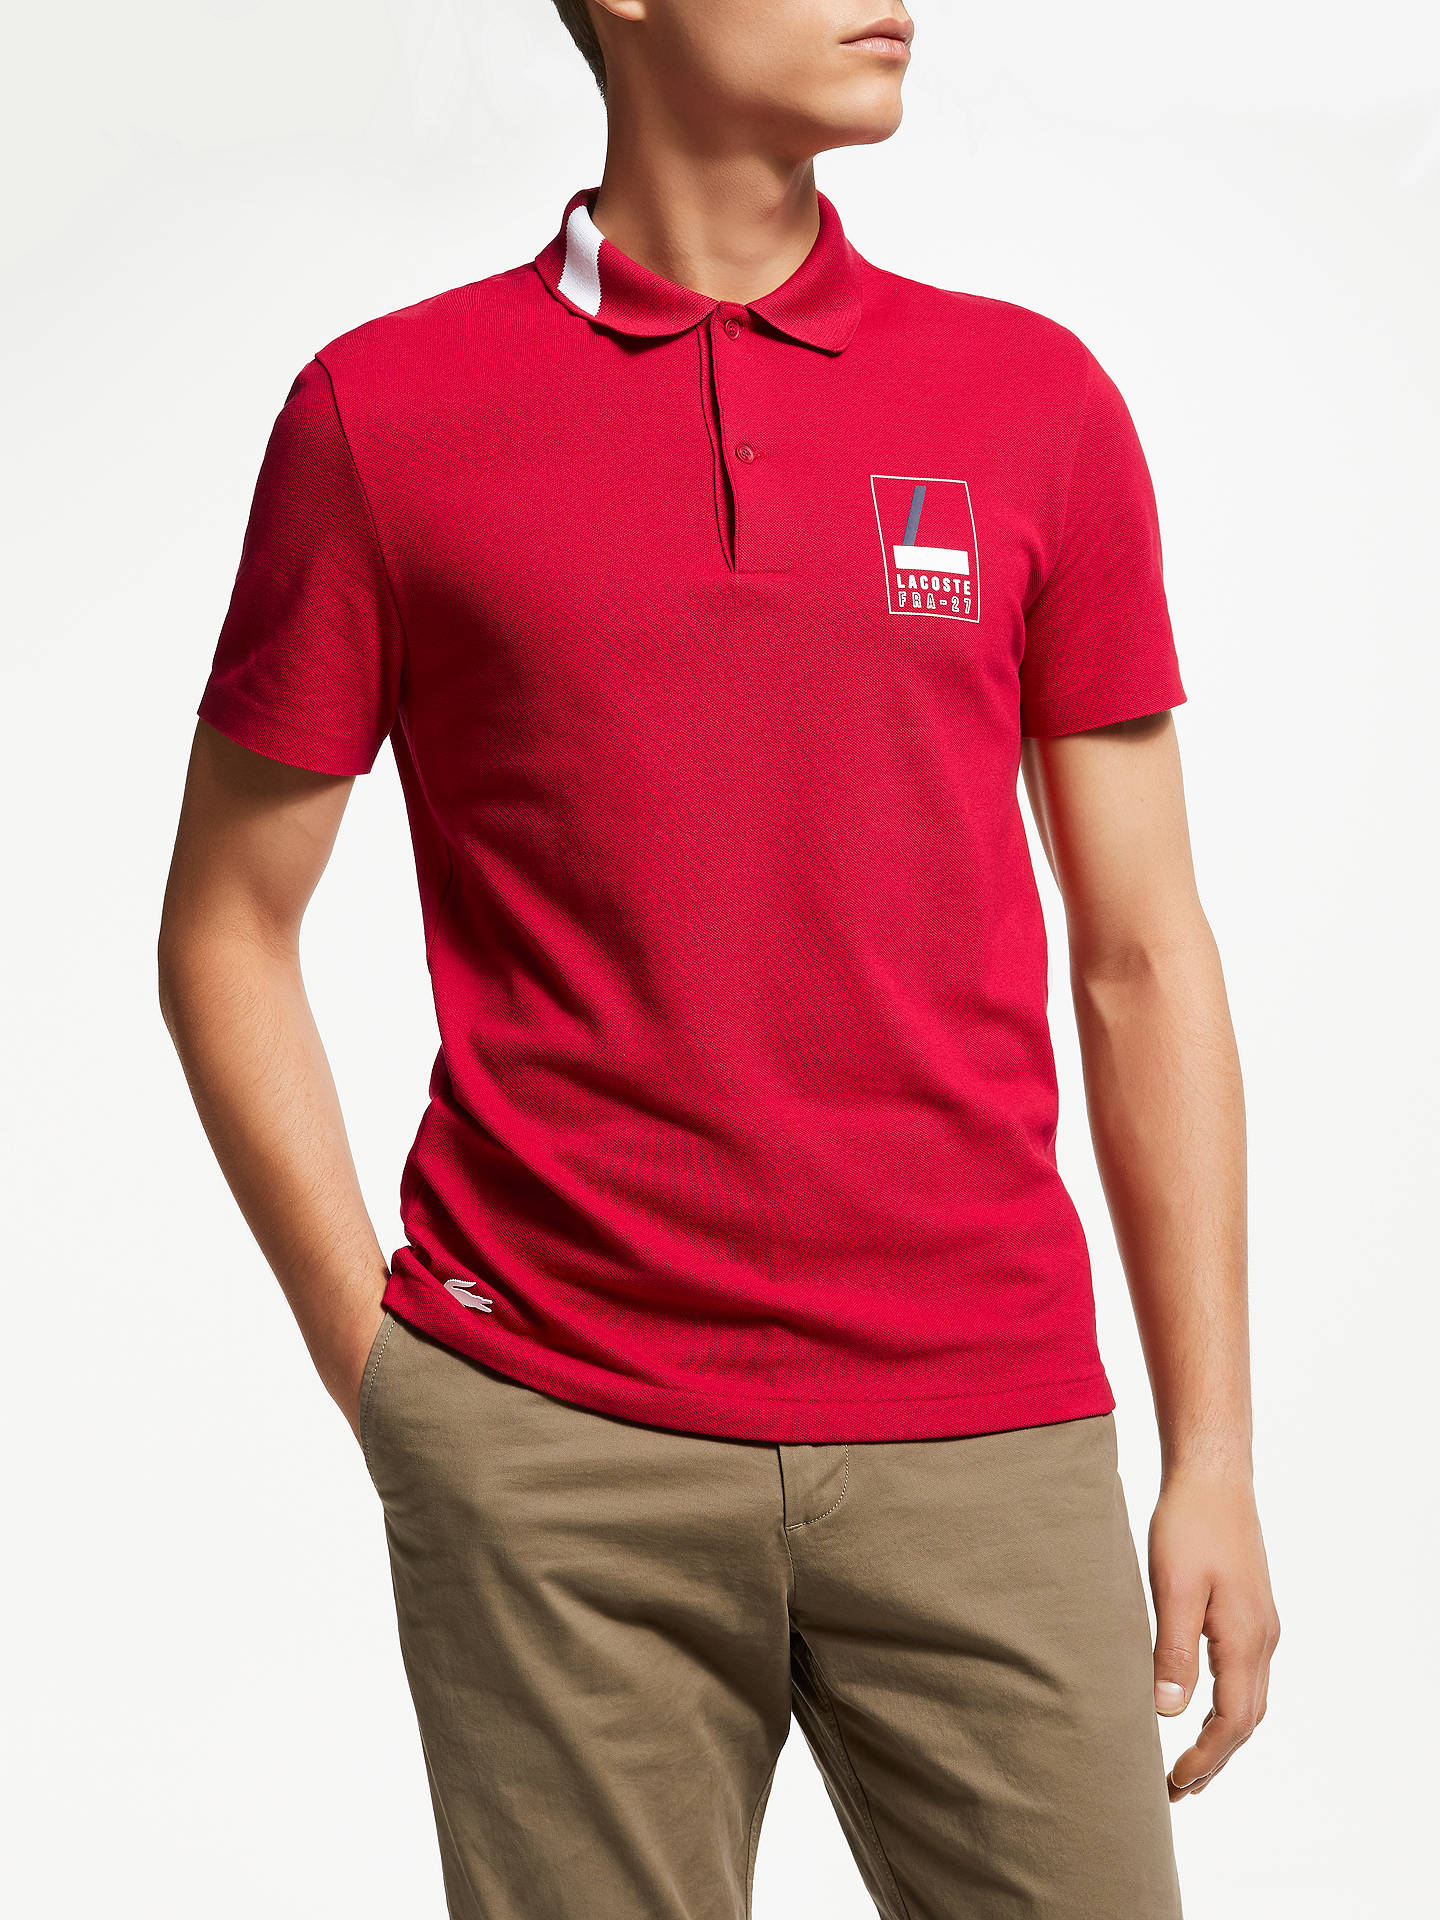 0a77401400ef6 BuyLacoste Abstract Croc Short Sleeve Polo Shirt, Red, S Online at  johnlewis.com ...